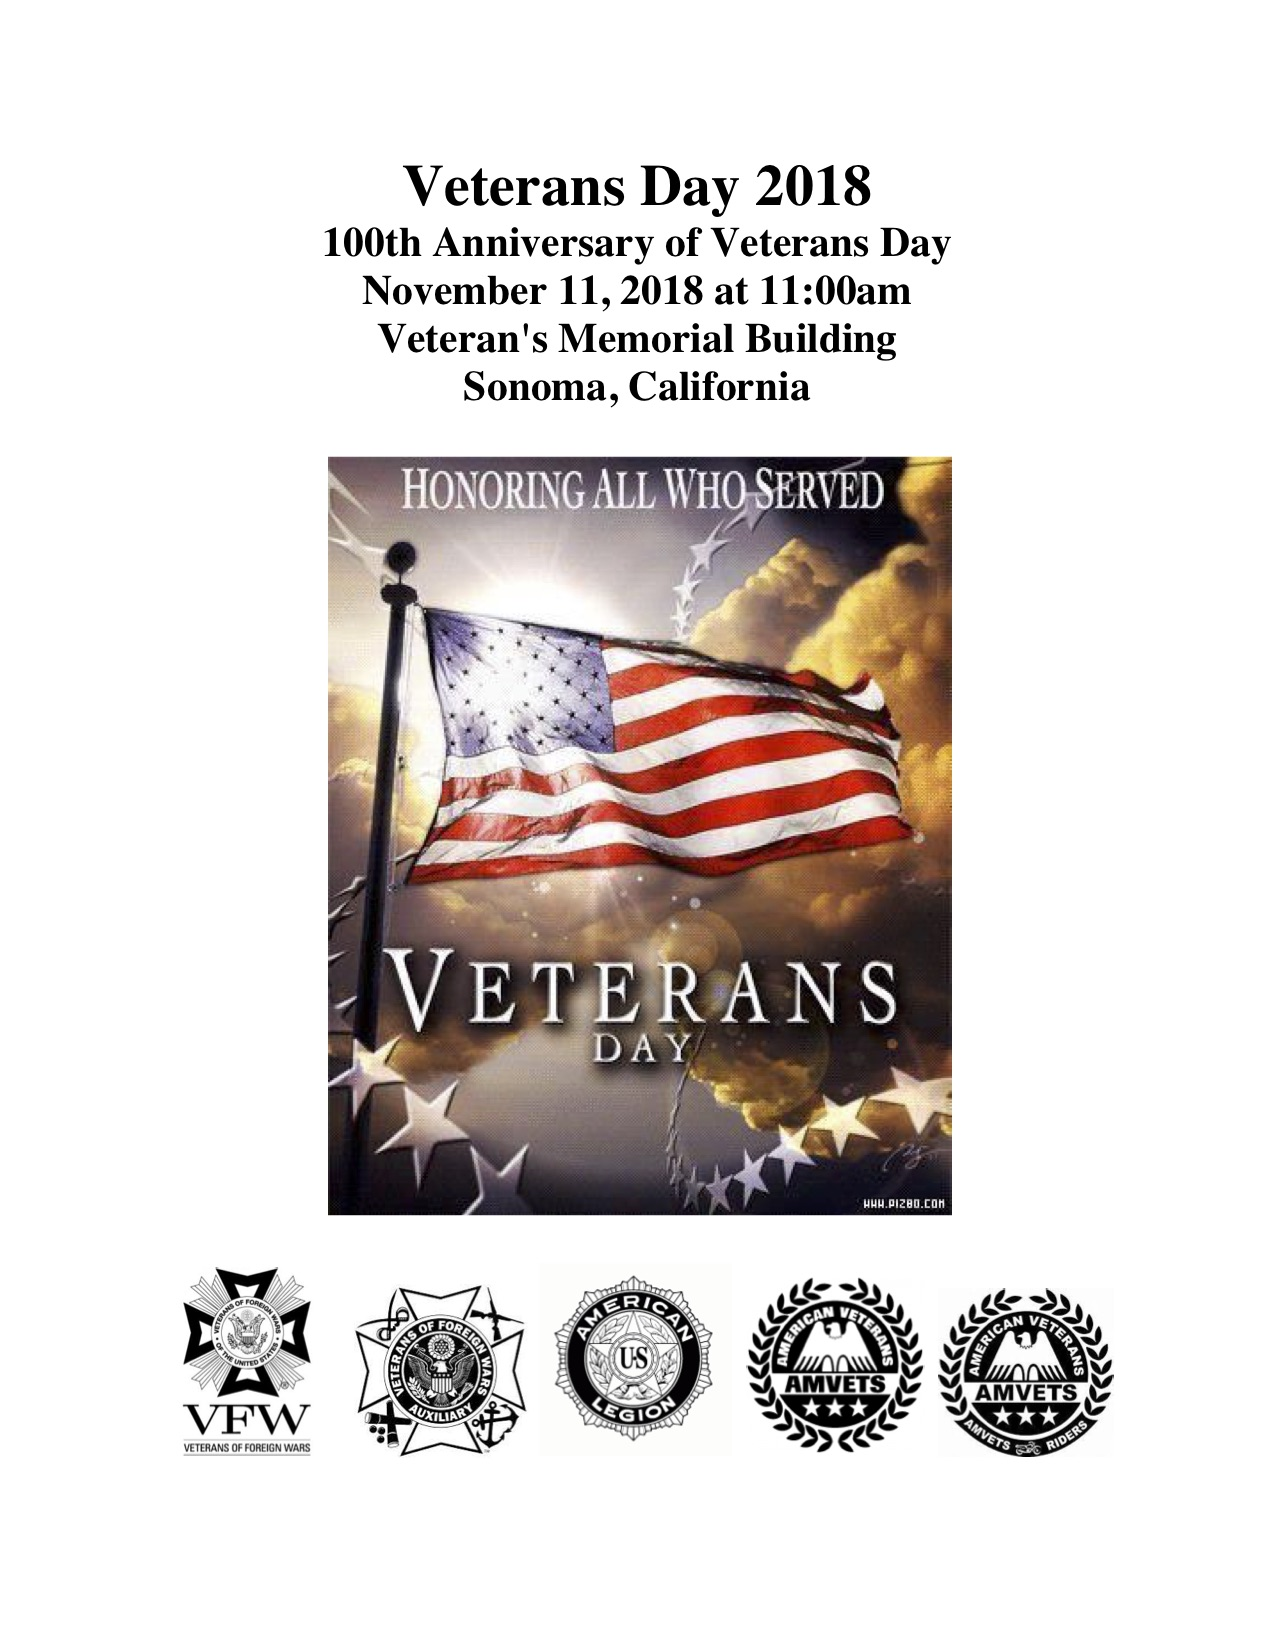 Veterans Day, November 11 2018